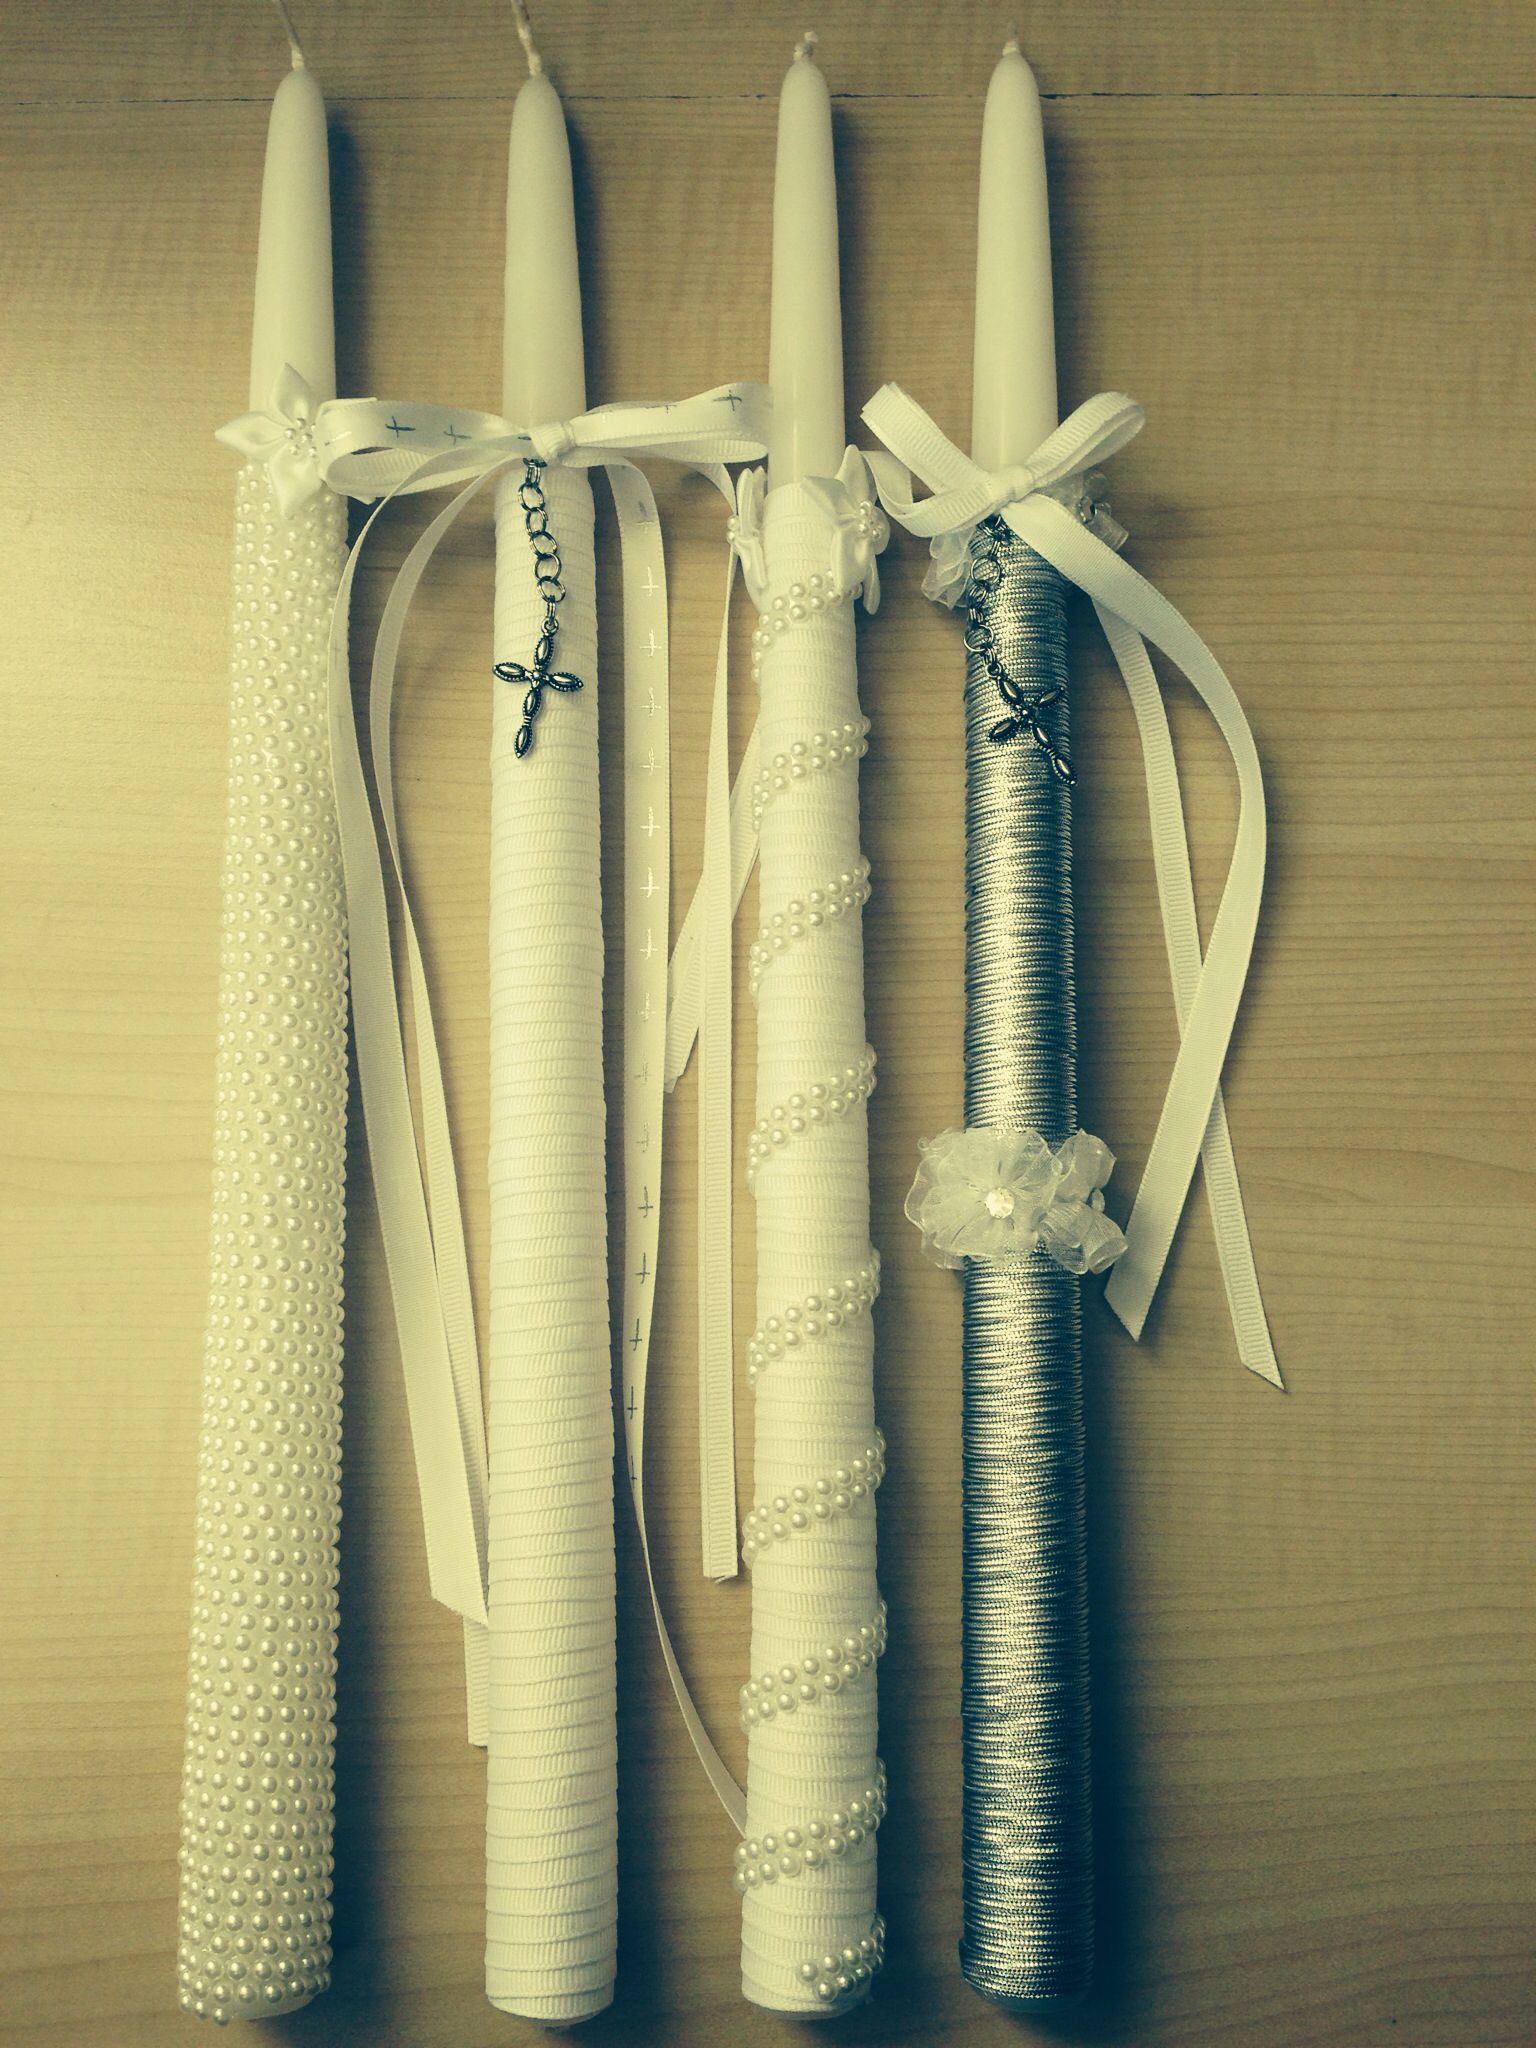 Baptism Candles I Like The Idea Of A Wrapped Candle With